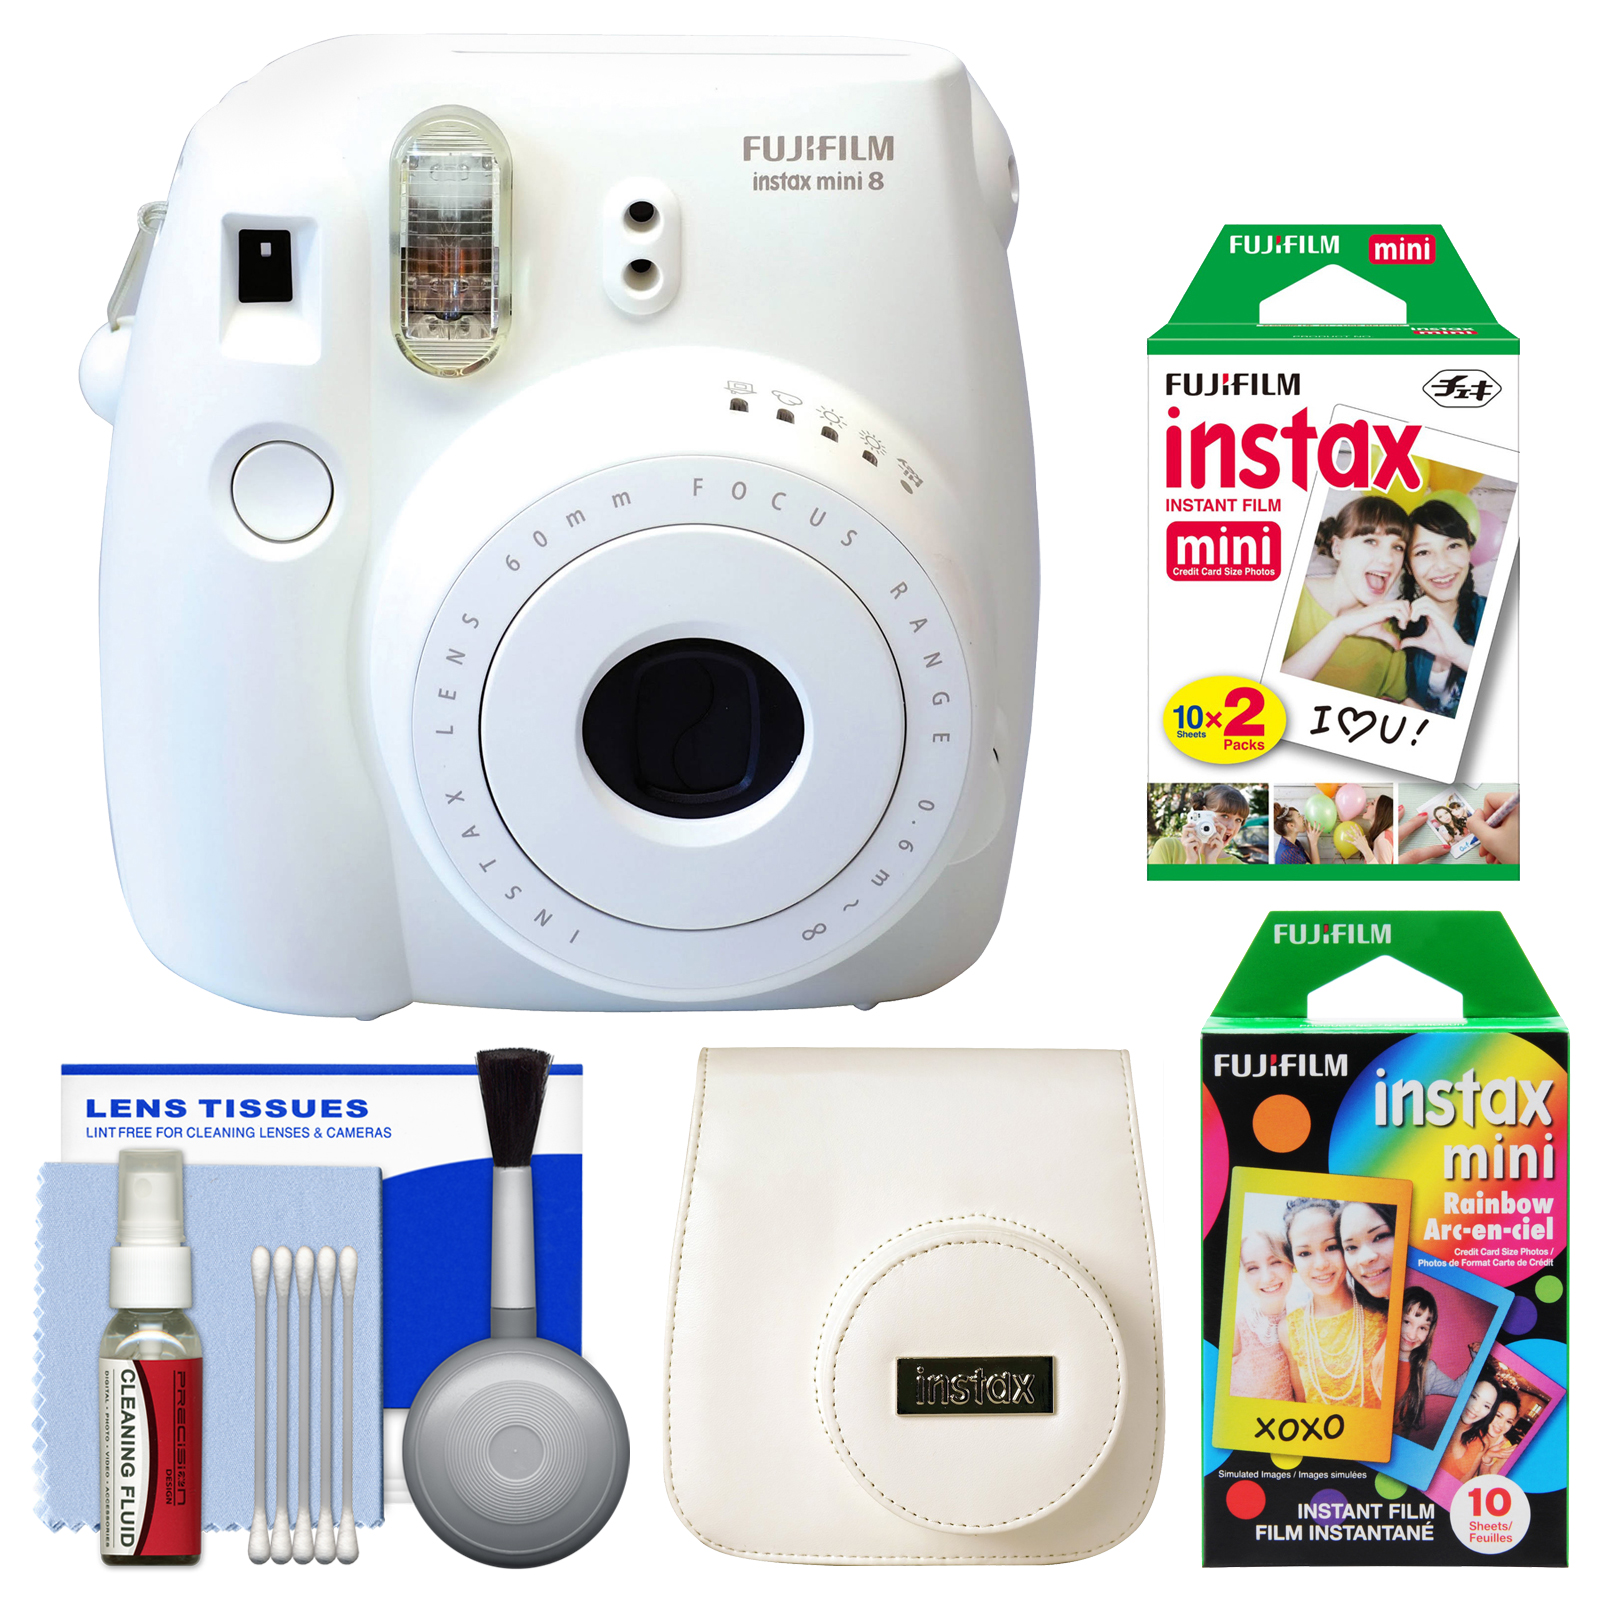 Fujifilm Instax Mini 8 Instant Film Camera (White) with 20 Twin & 10 Rainbow Prints   Case   Kit